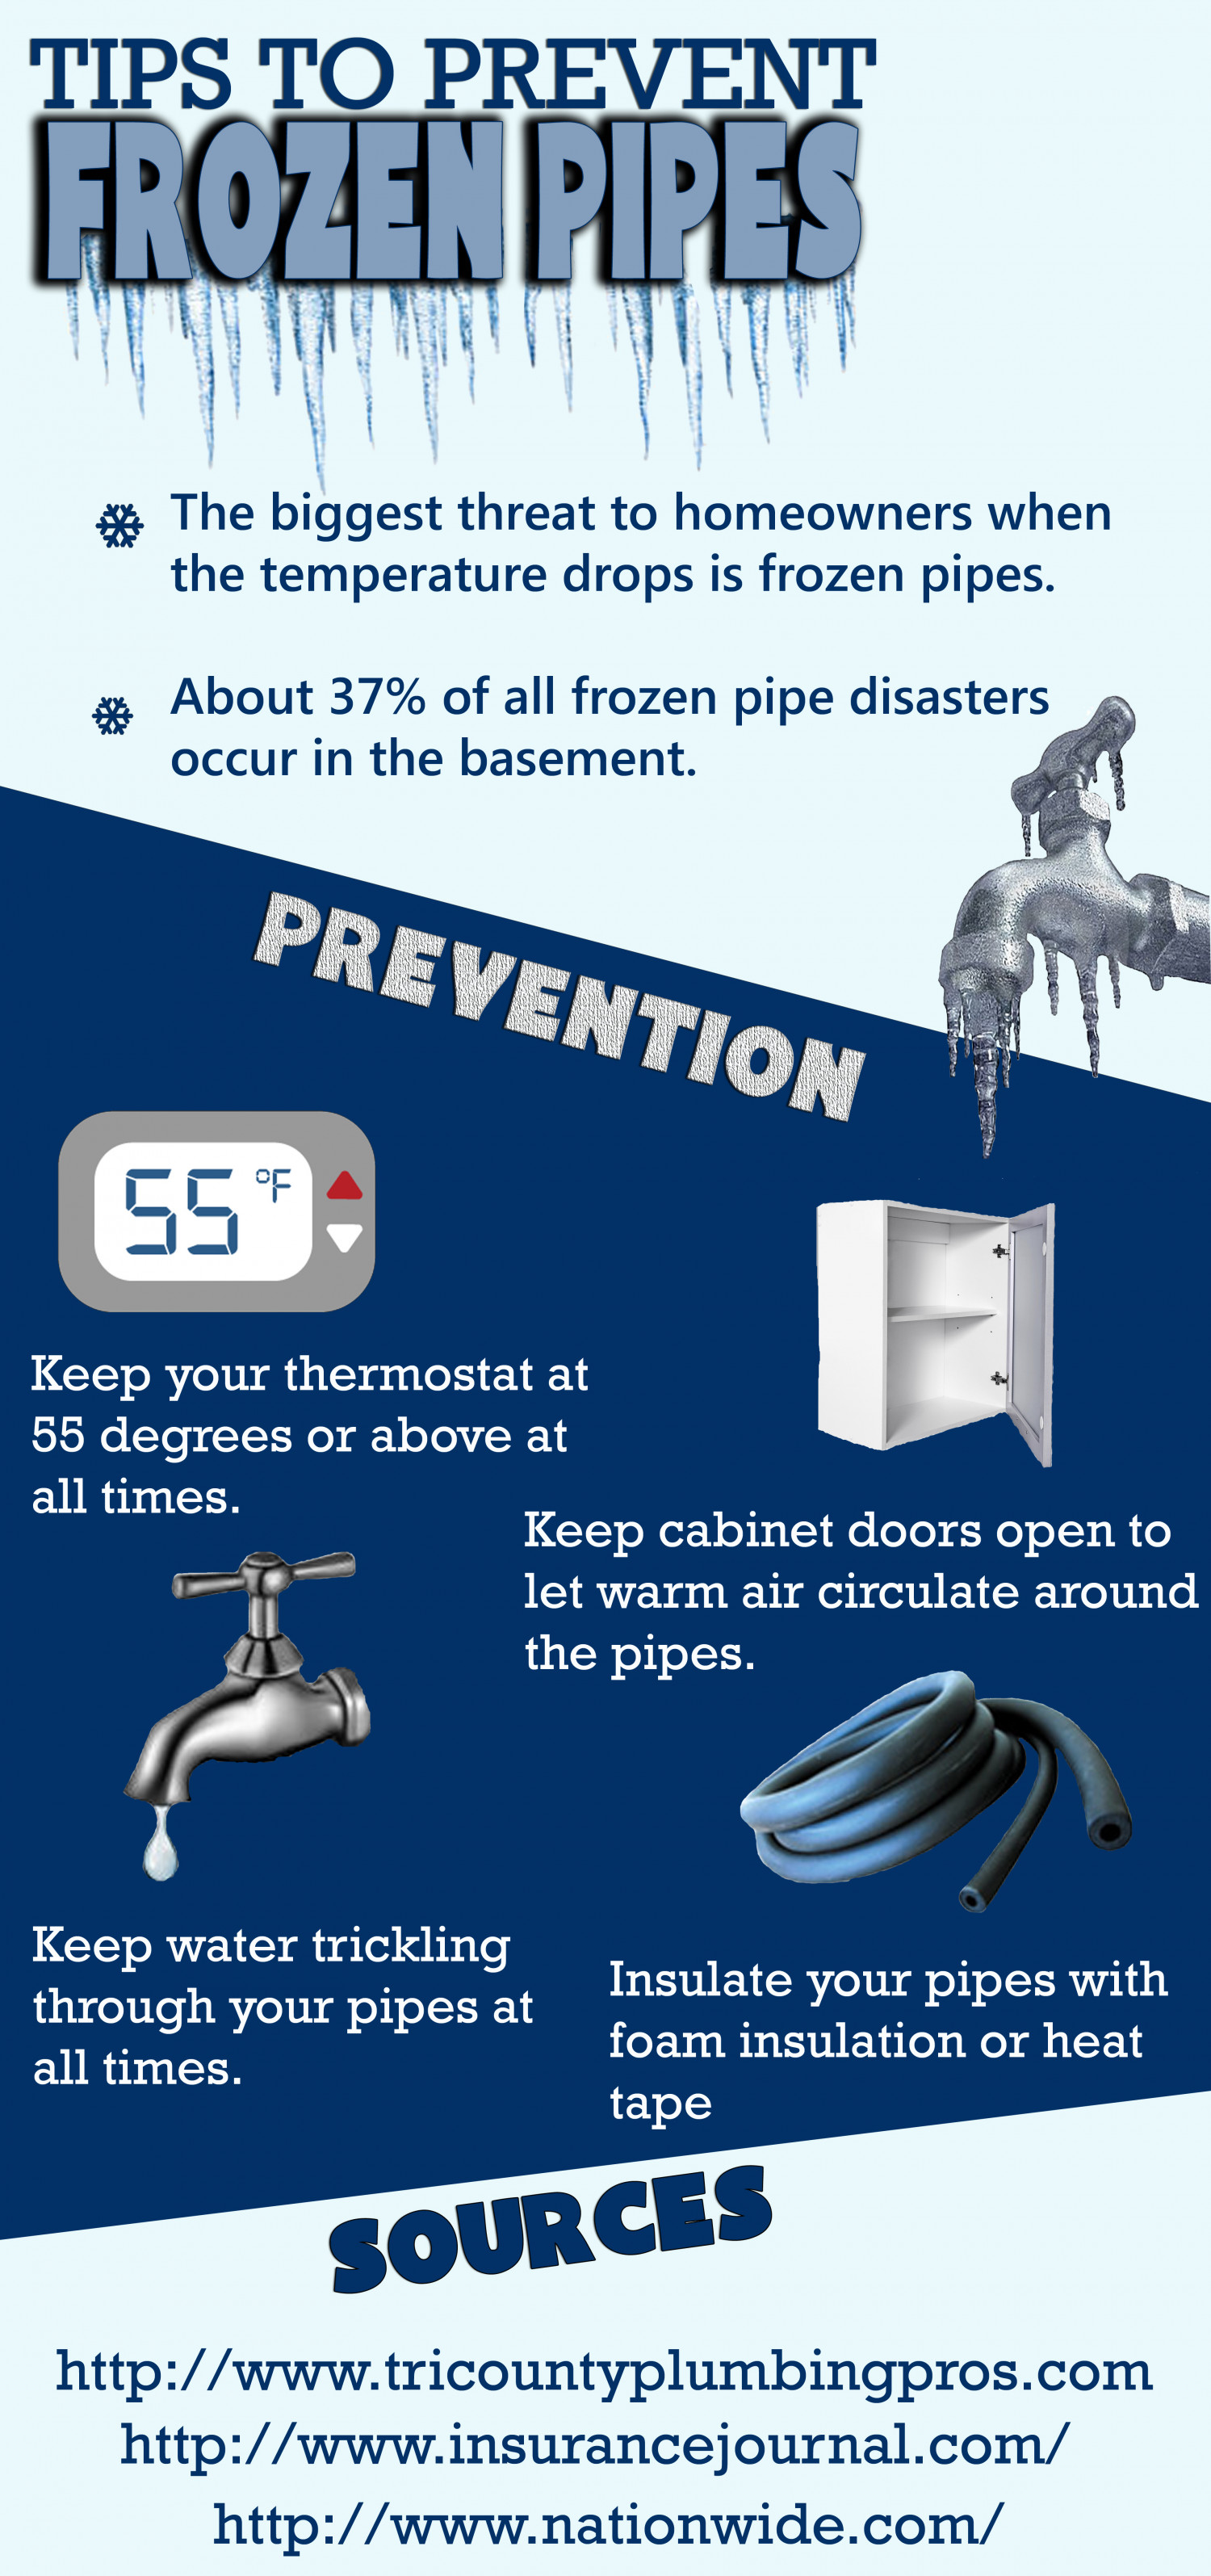 Tips to Prevent Frozen Pipes  Infographic